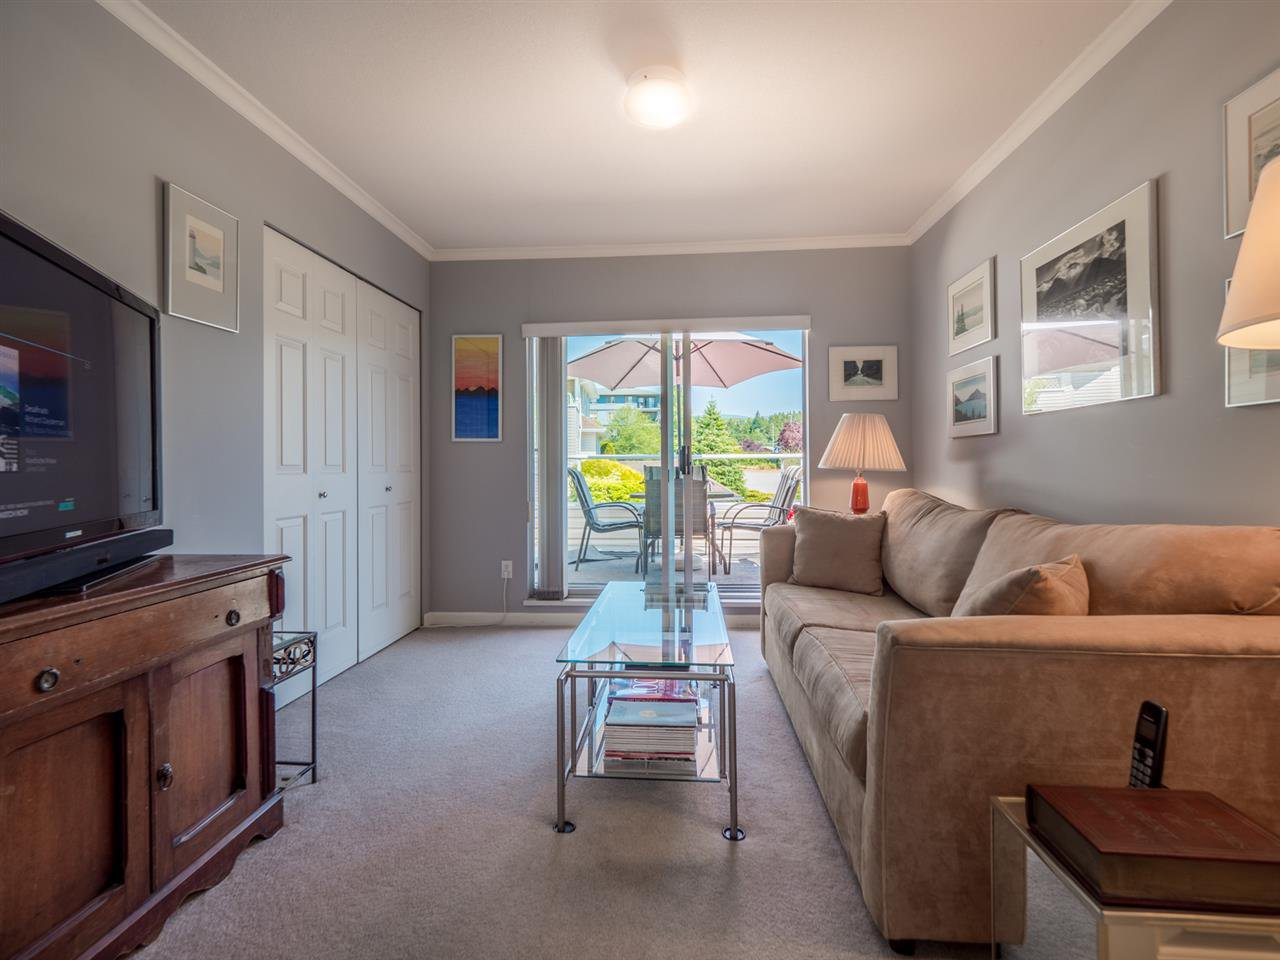 """Photo 8: Photos: 16 5630 TRAIL Avenue in Sechelt: Sechelt District Townhouse for sale in """"HIGHPOINT"""" (Sunshine Coast)  : MLS®# R2382780"""